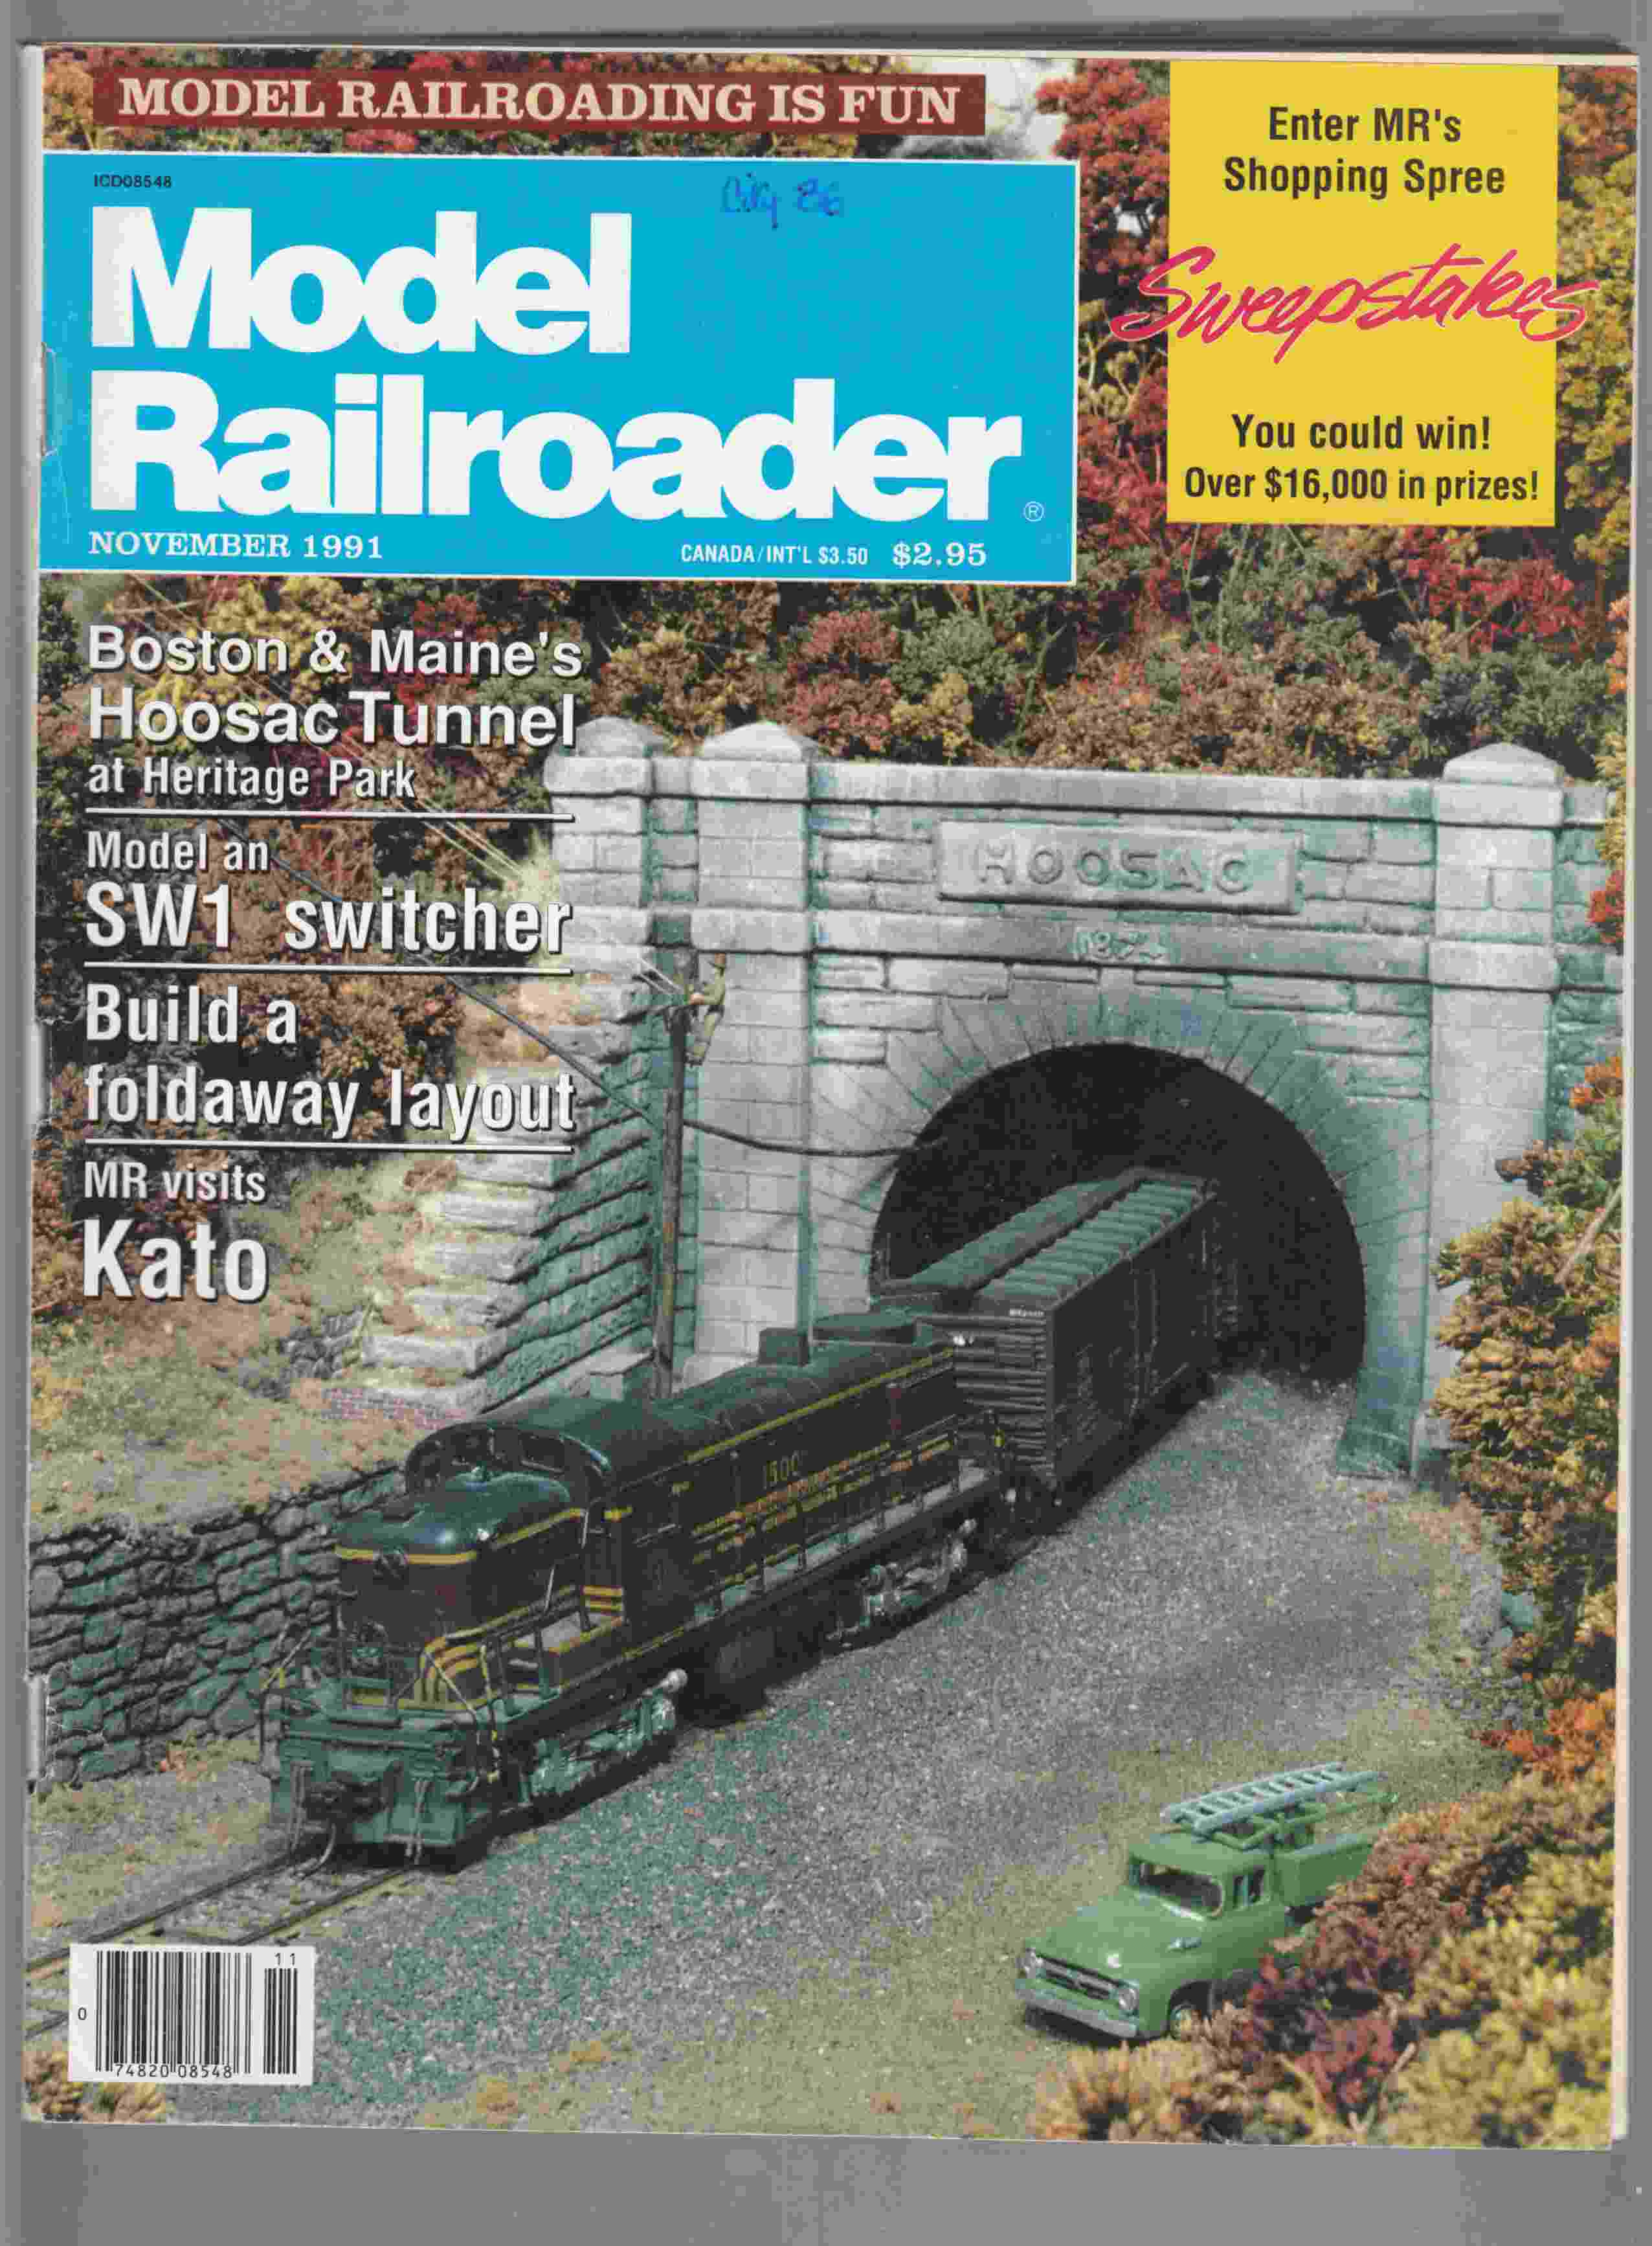 Image for Model Railroader November 1991 Volume 58 Number 11